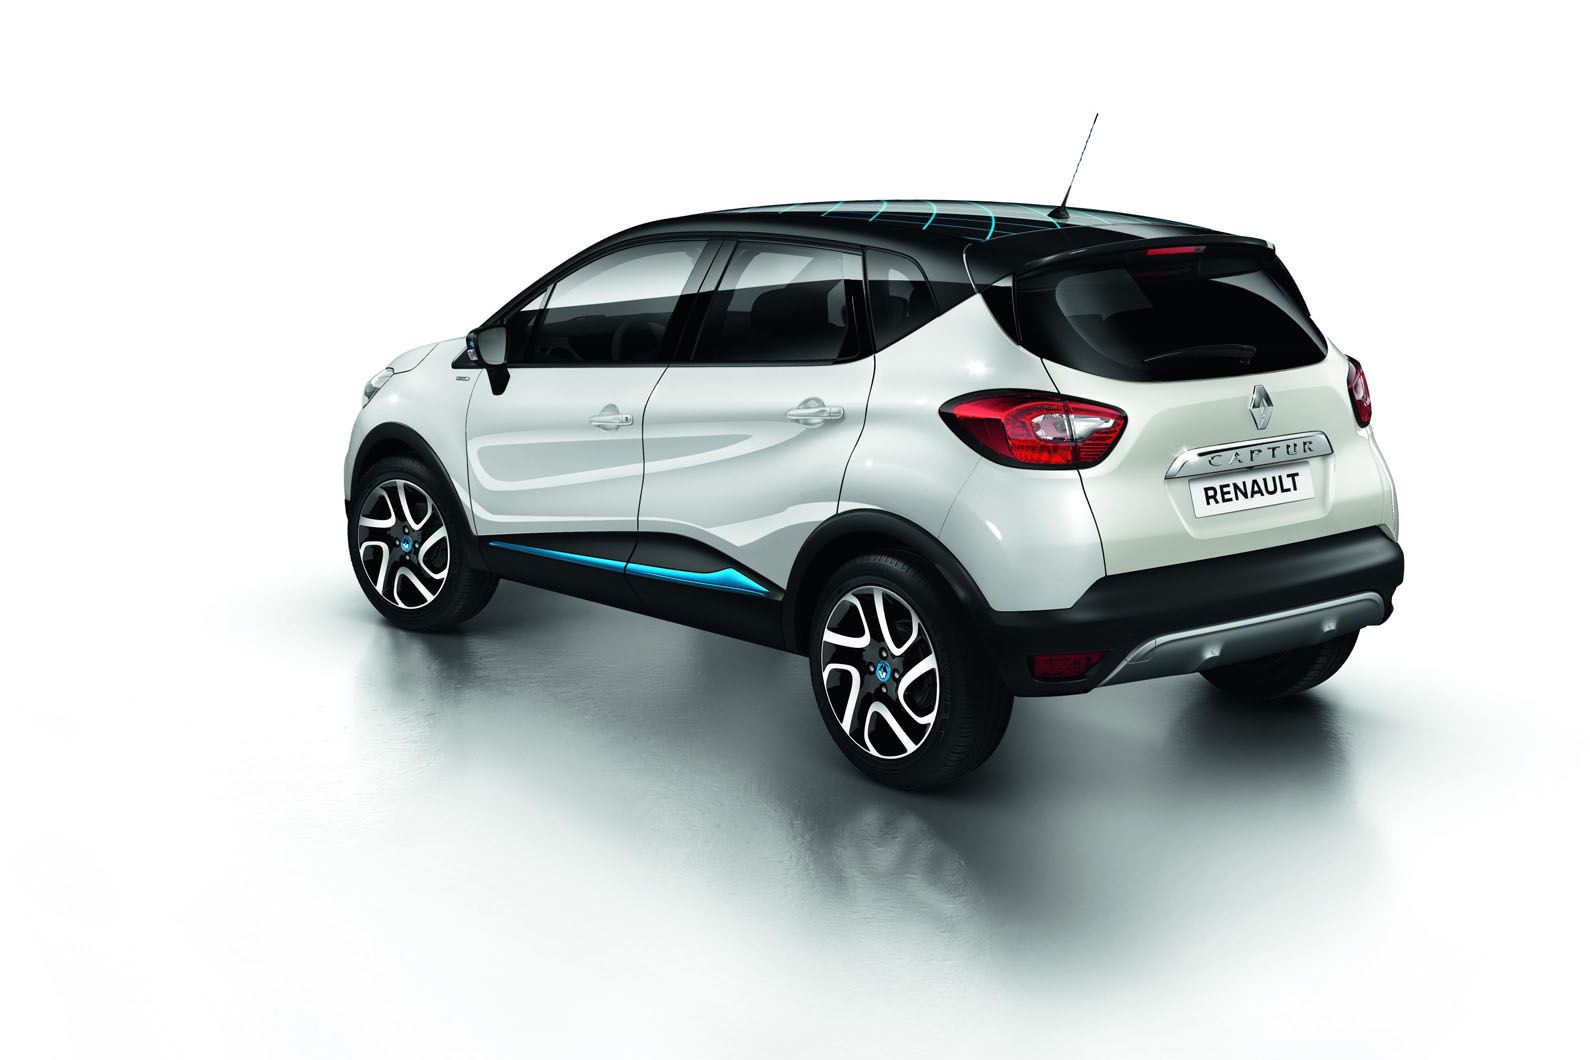 2016 renault captur refreshed model gets new range topper autocar. Black Bedroom Furniture Sets. Home Design Ideas